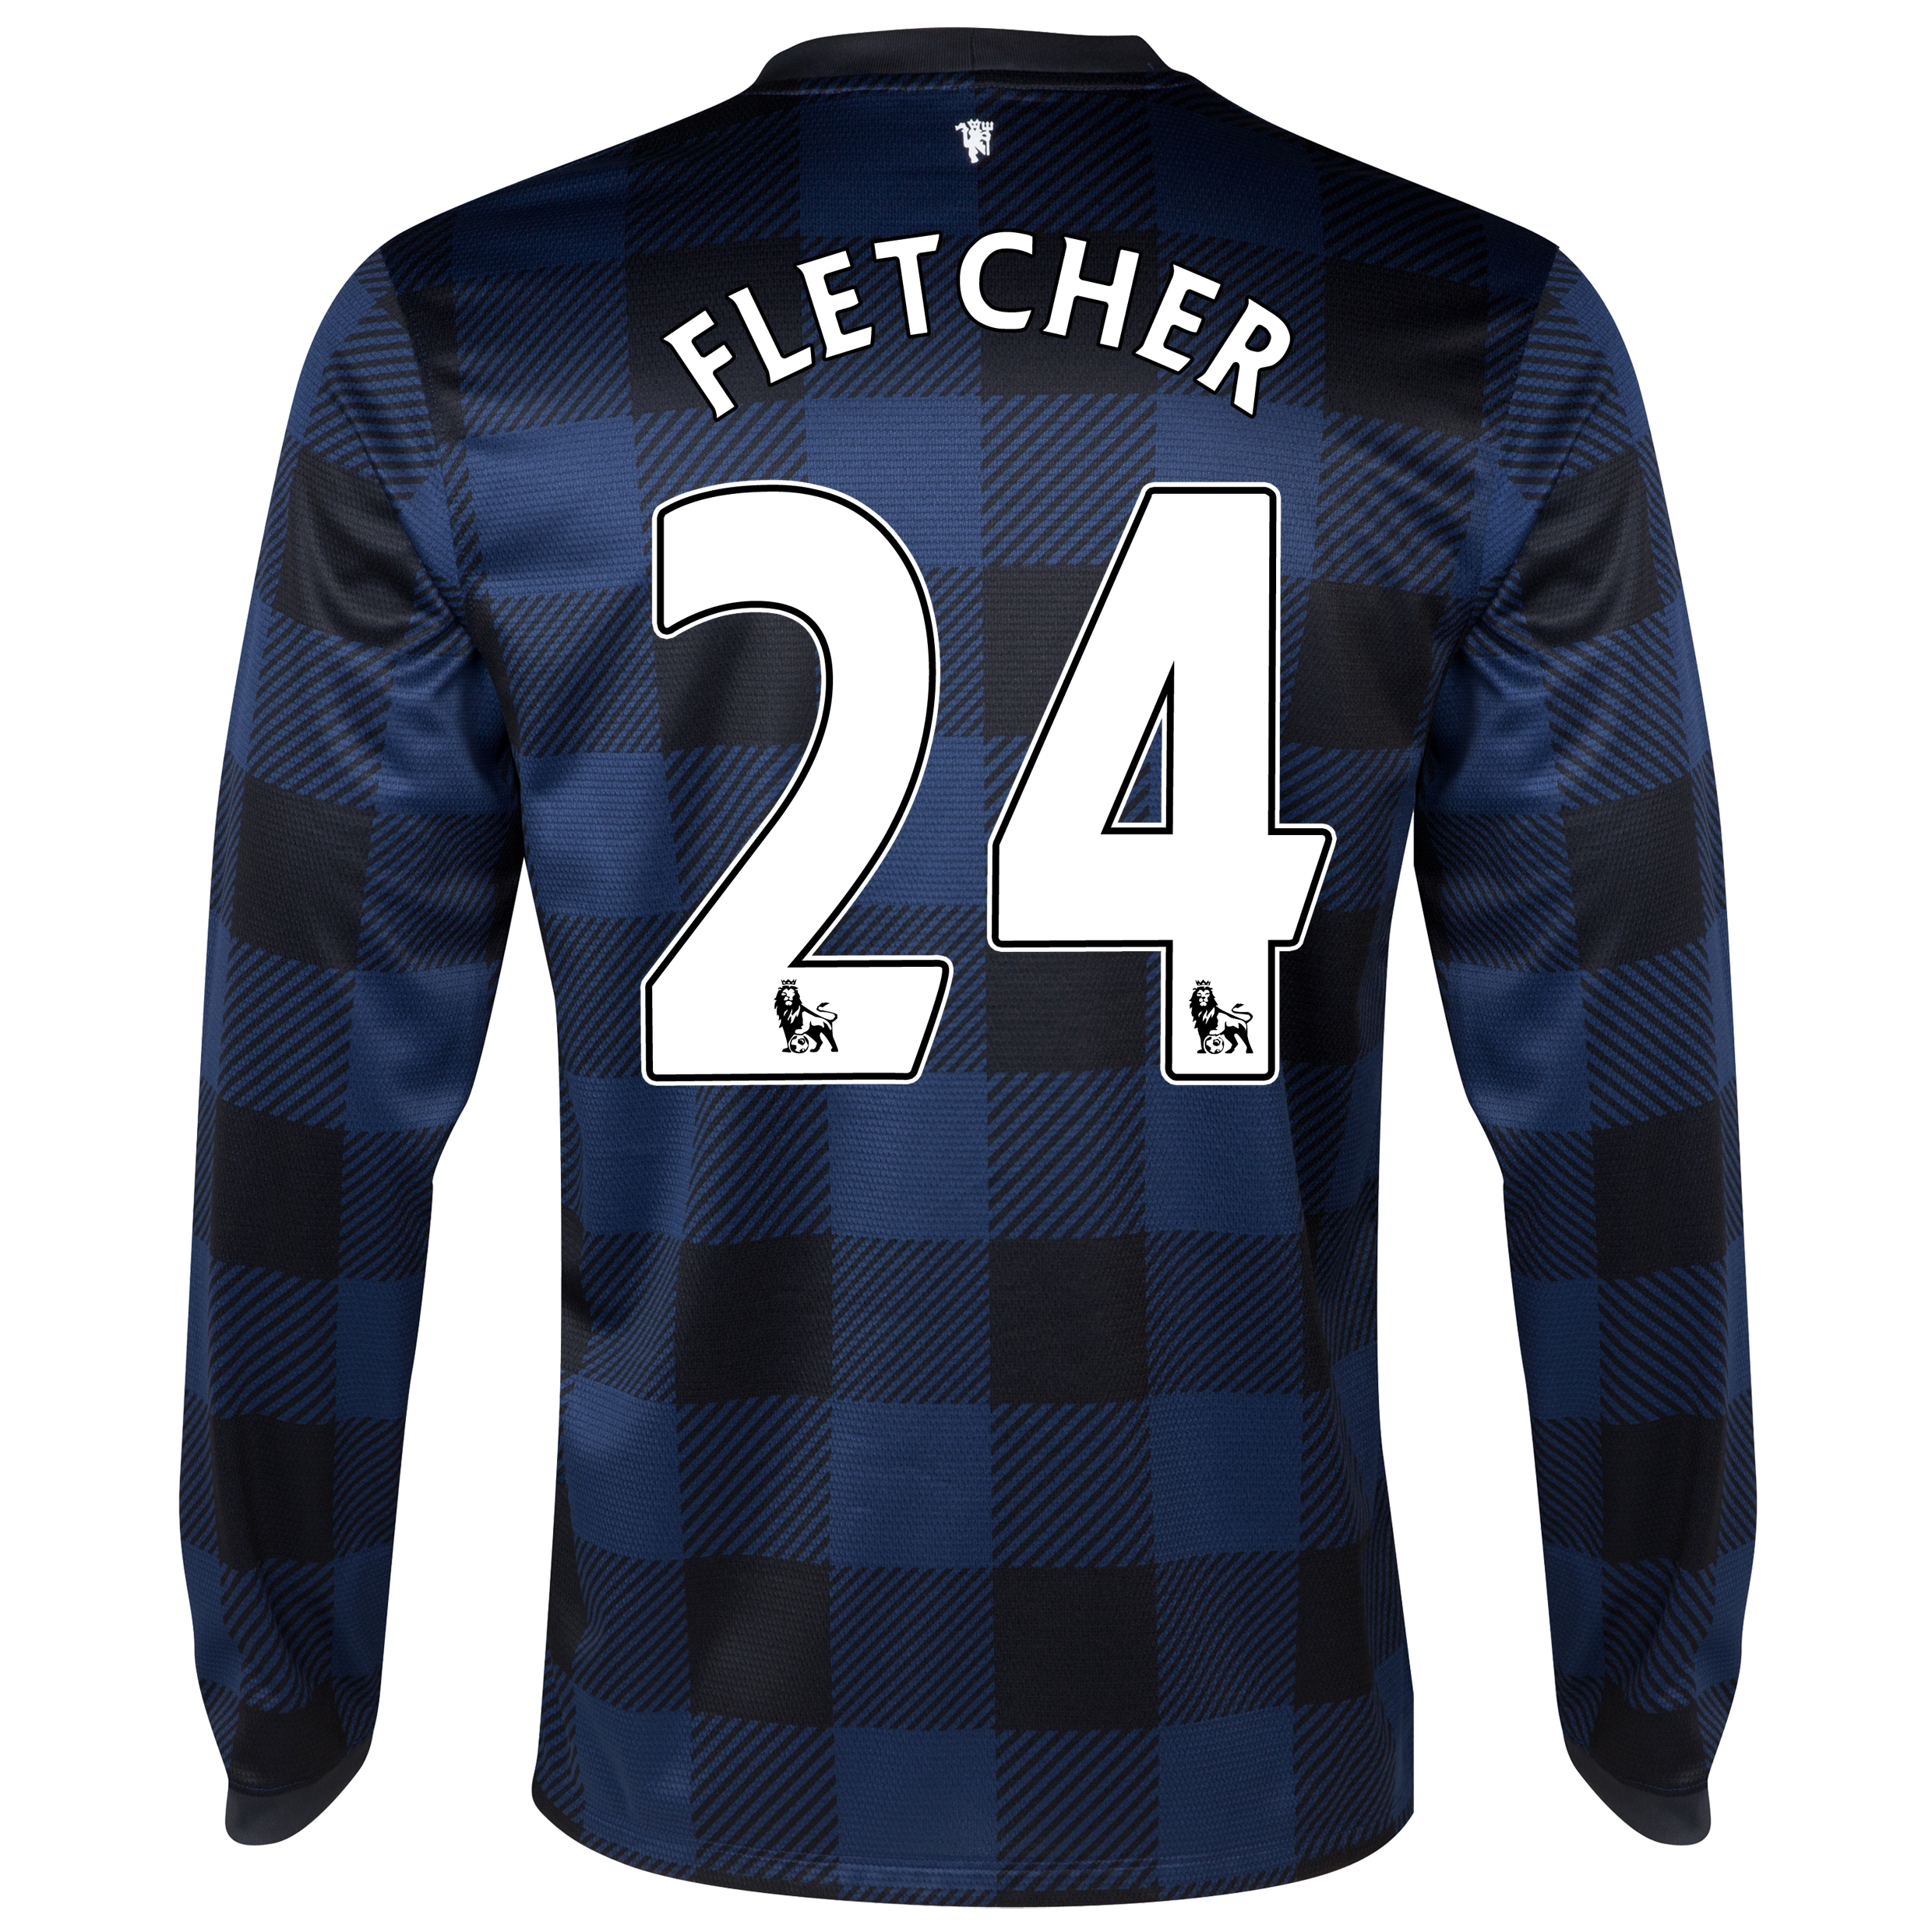 Manchester United Away Shirt 2013/14 - Long Sleeved - Kids with Fletcher 24 printing